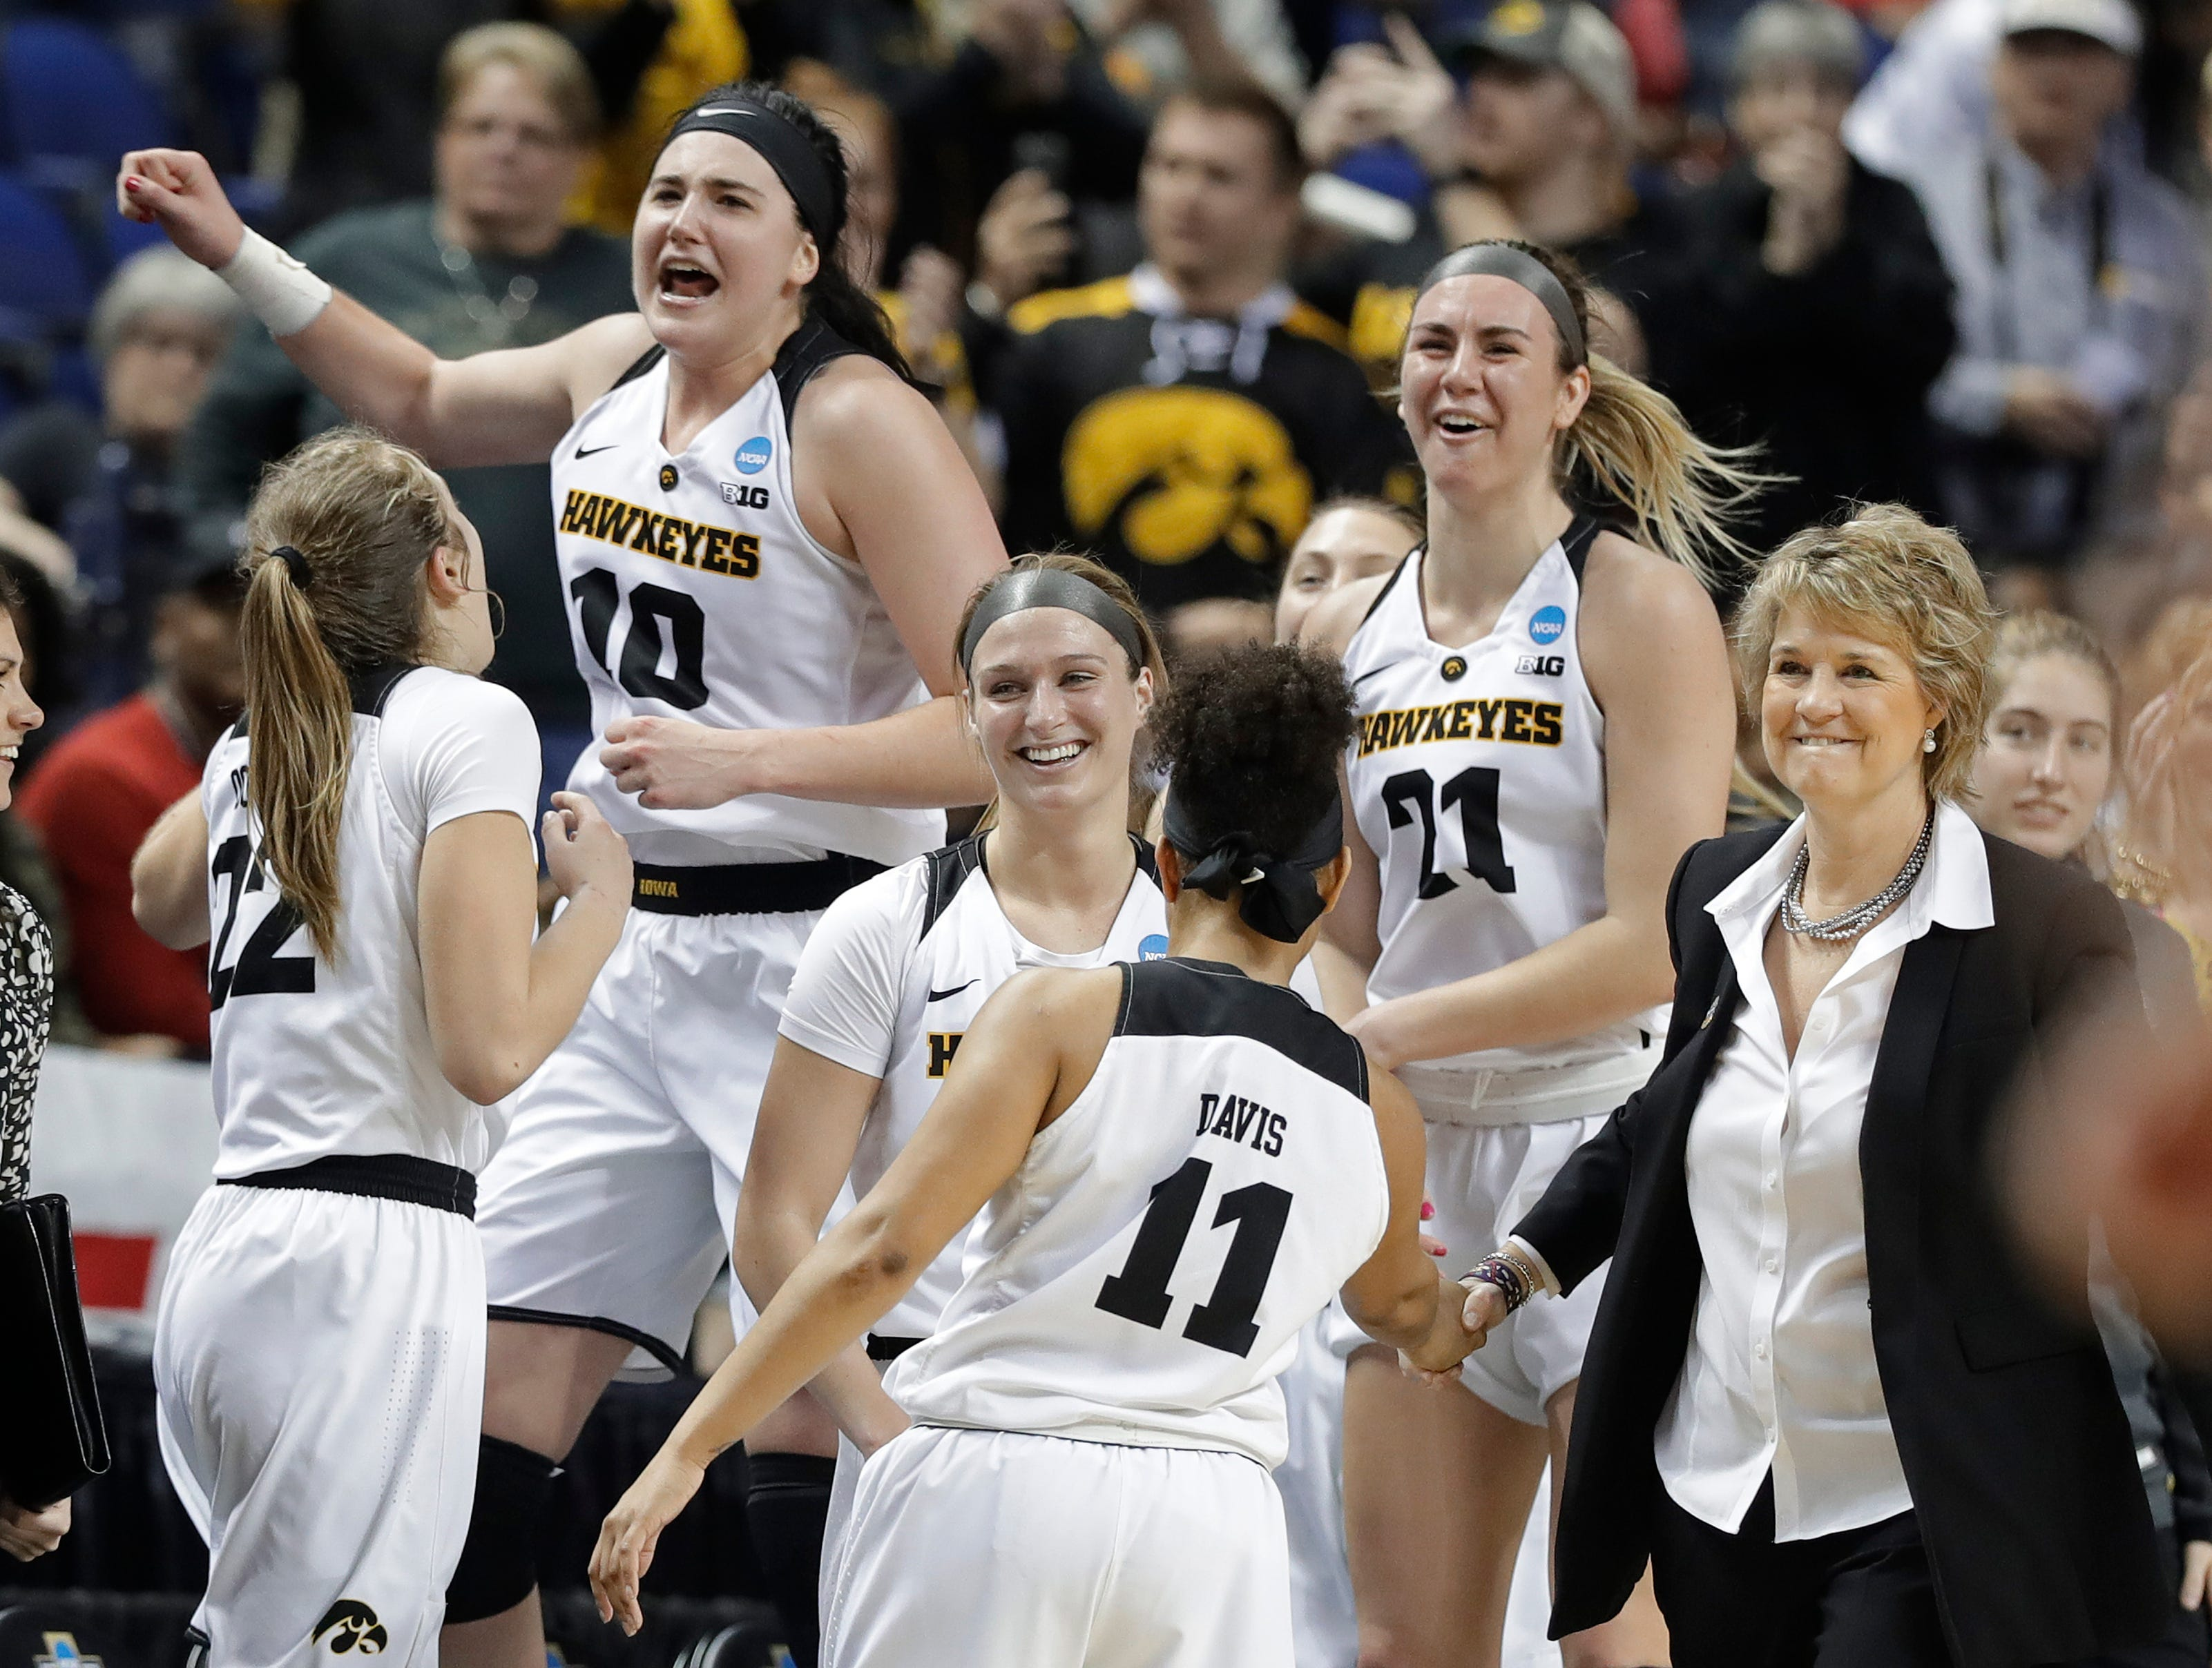 Iowa players including Megan Gustafson (10) and Hannah Stewart (21) celebrates in the closing seconds of the second half of a regional women's college basketball game against North Carolina State in the NCAA Tournament in Greensboro, N.C., Saturday, March 30, 2019.